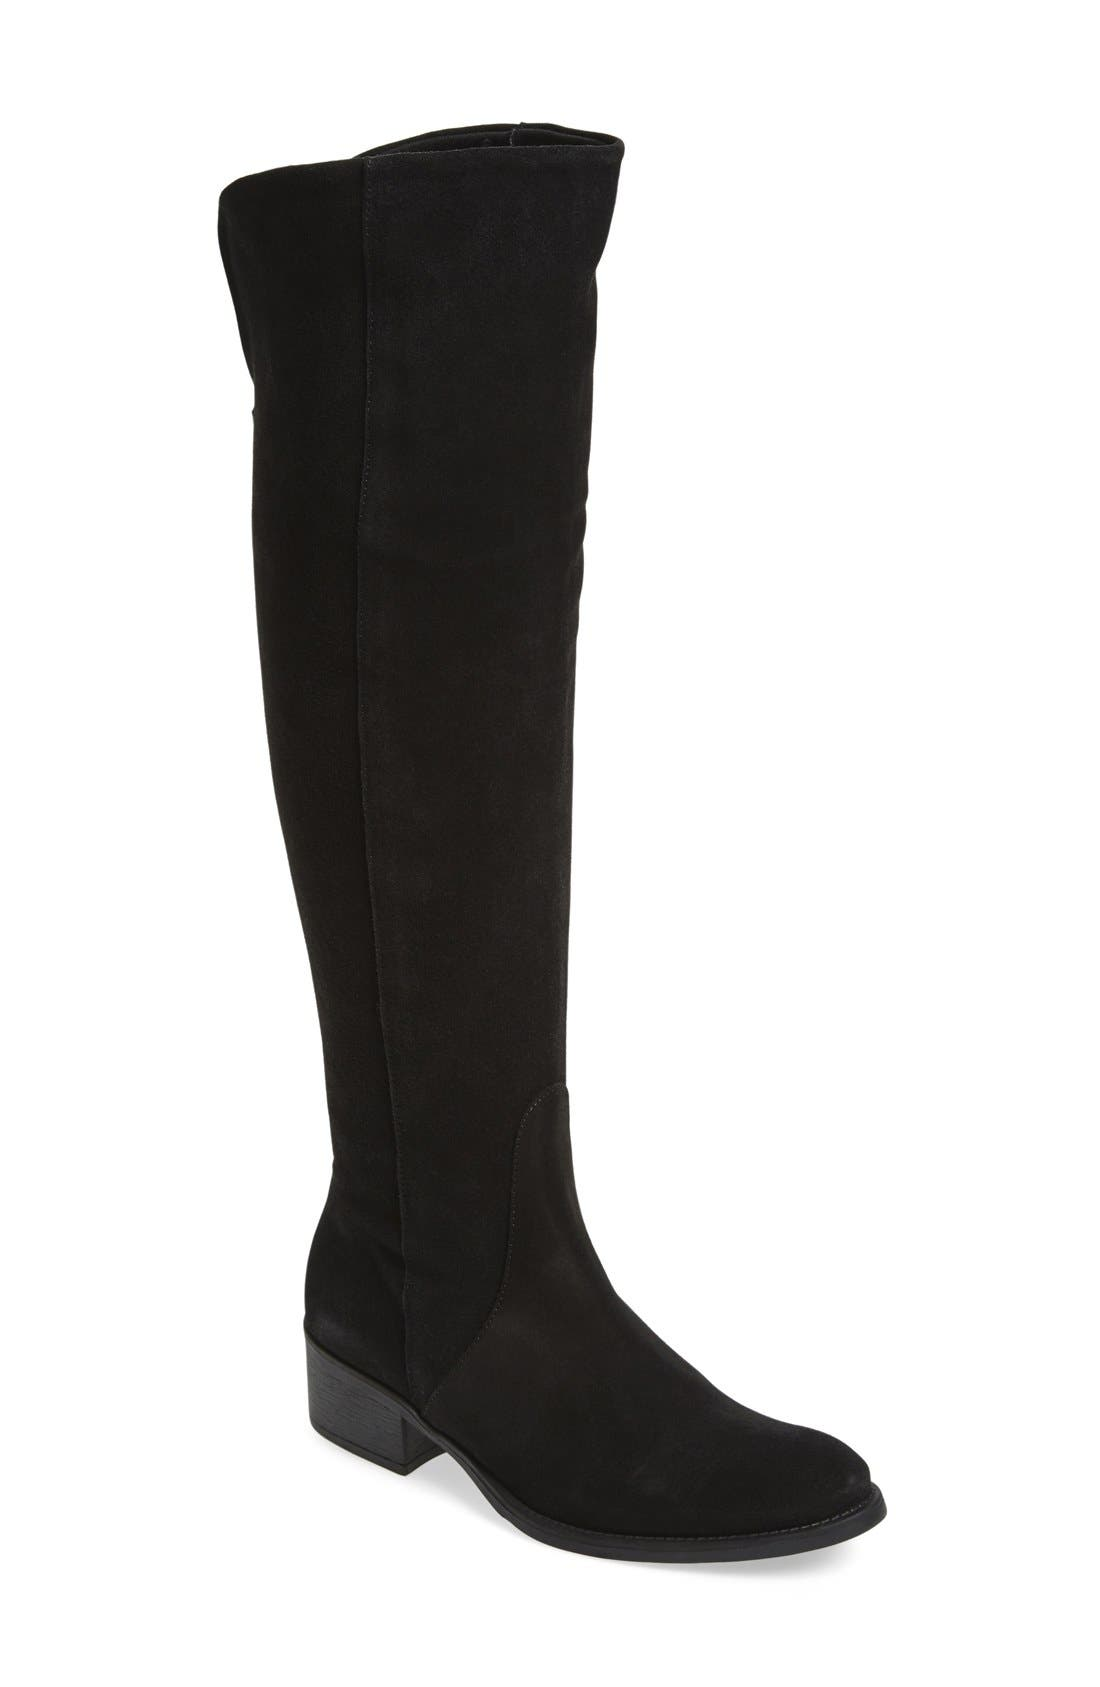 Toni Pons 'Tallin' Over-The-Knee Riding Boot (Women)